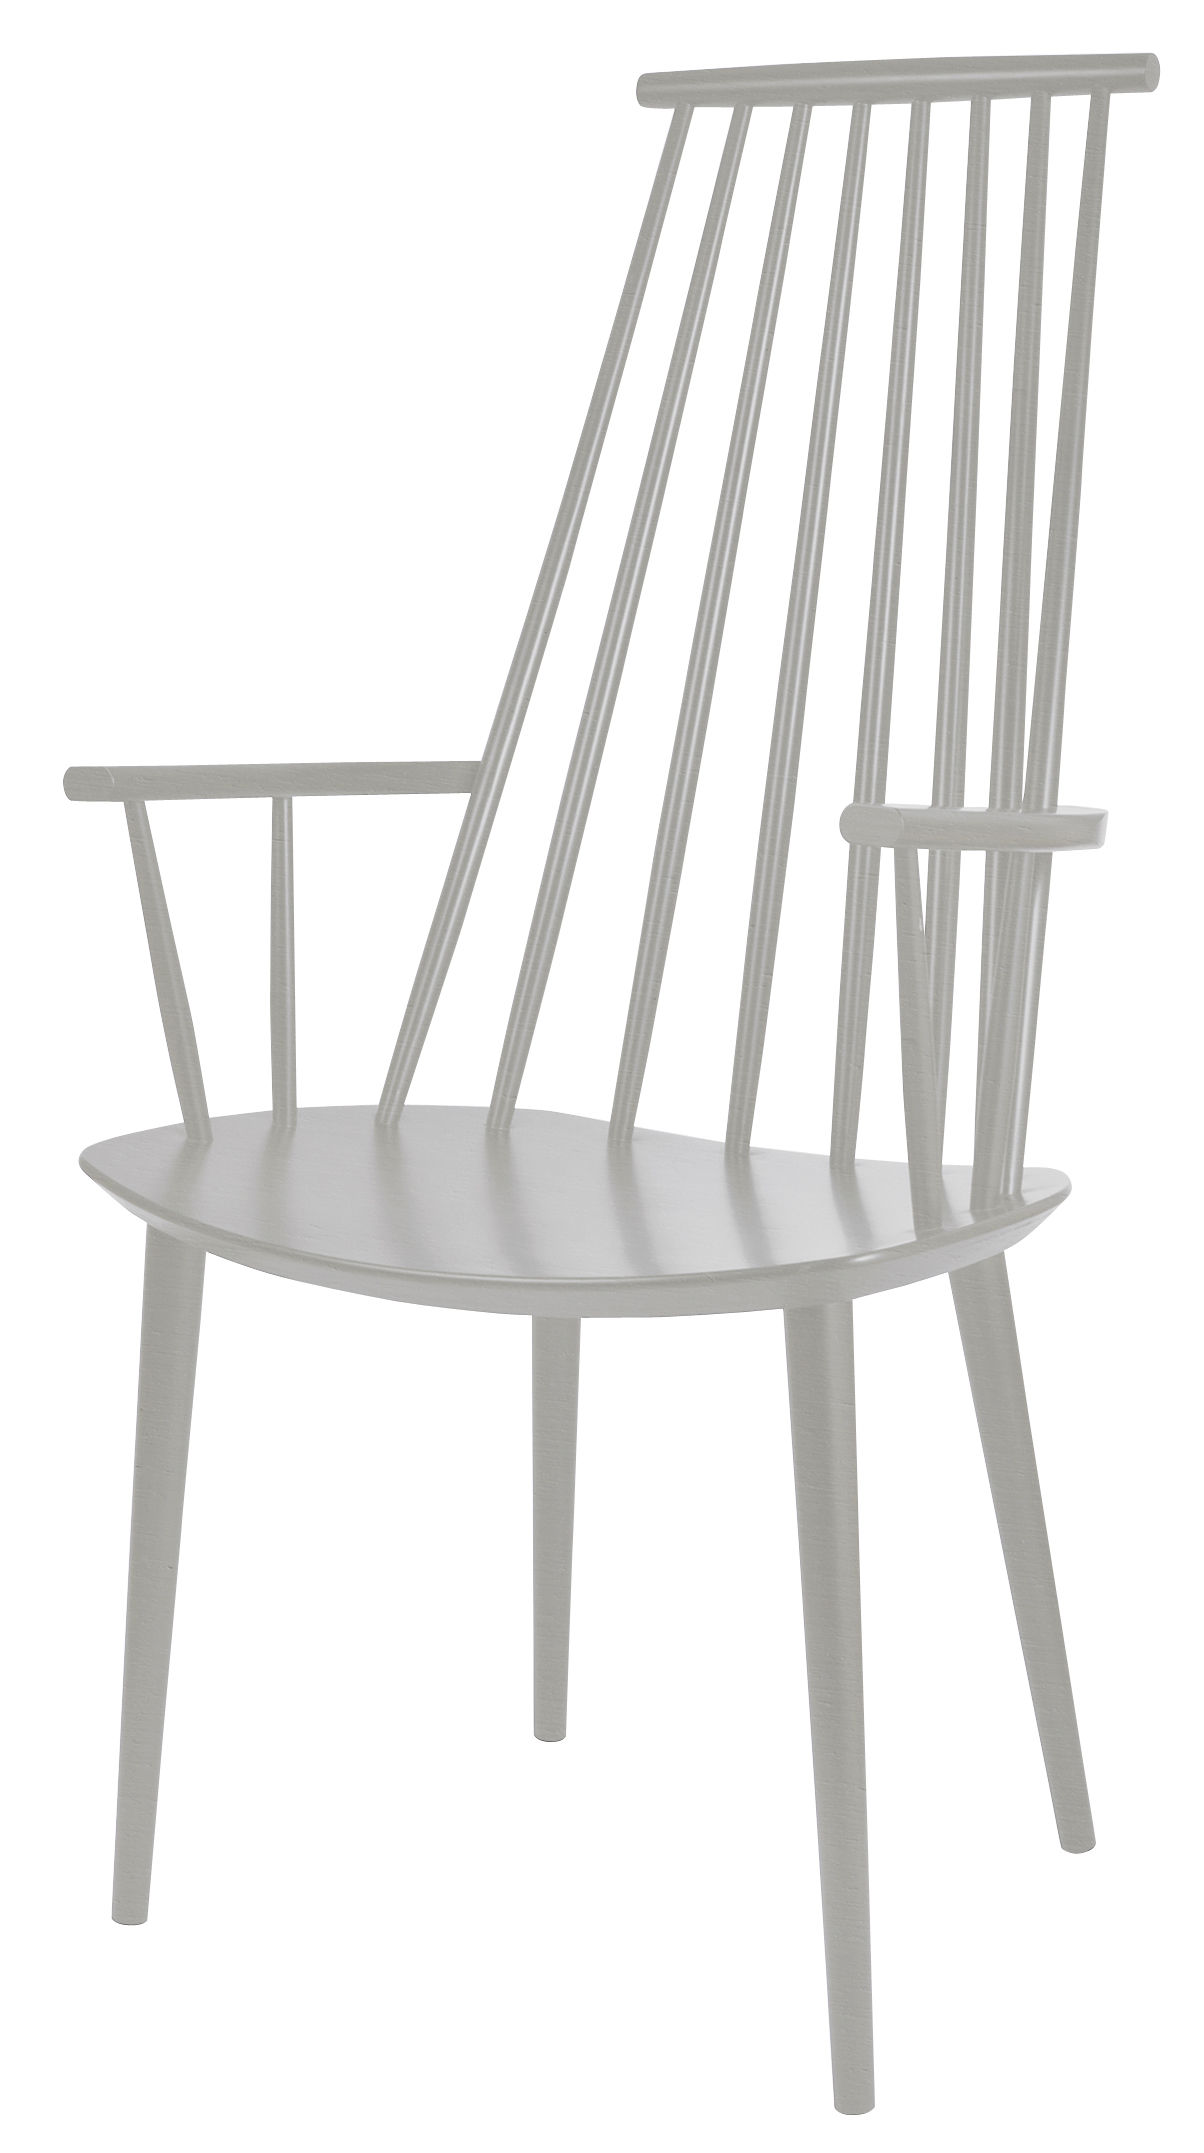 Furniture - Chairs - J110 Armchair - / Wood by Hay - Light grey - Lacquered beechwood